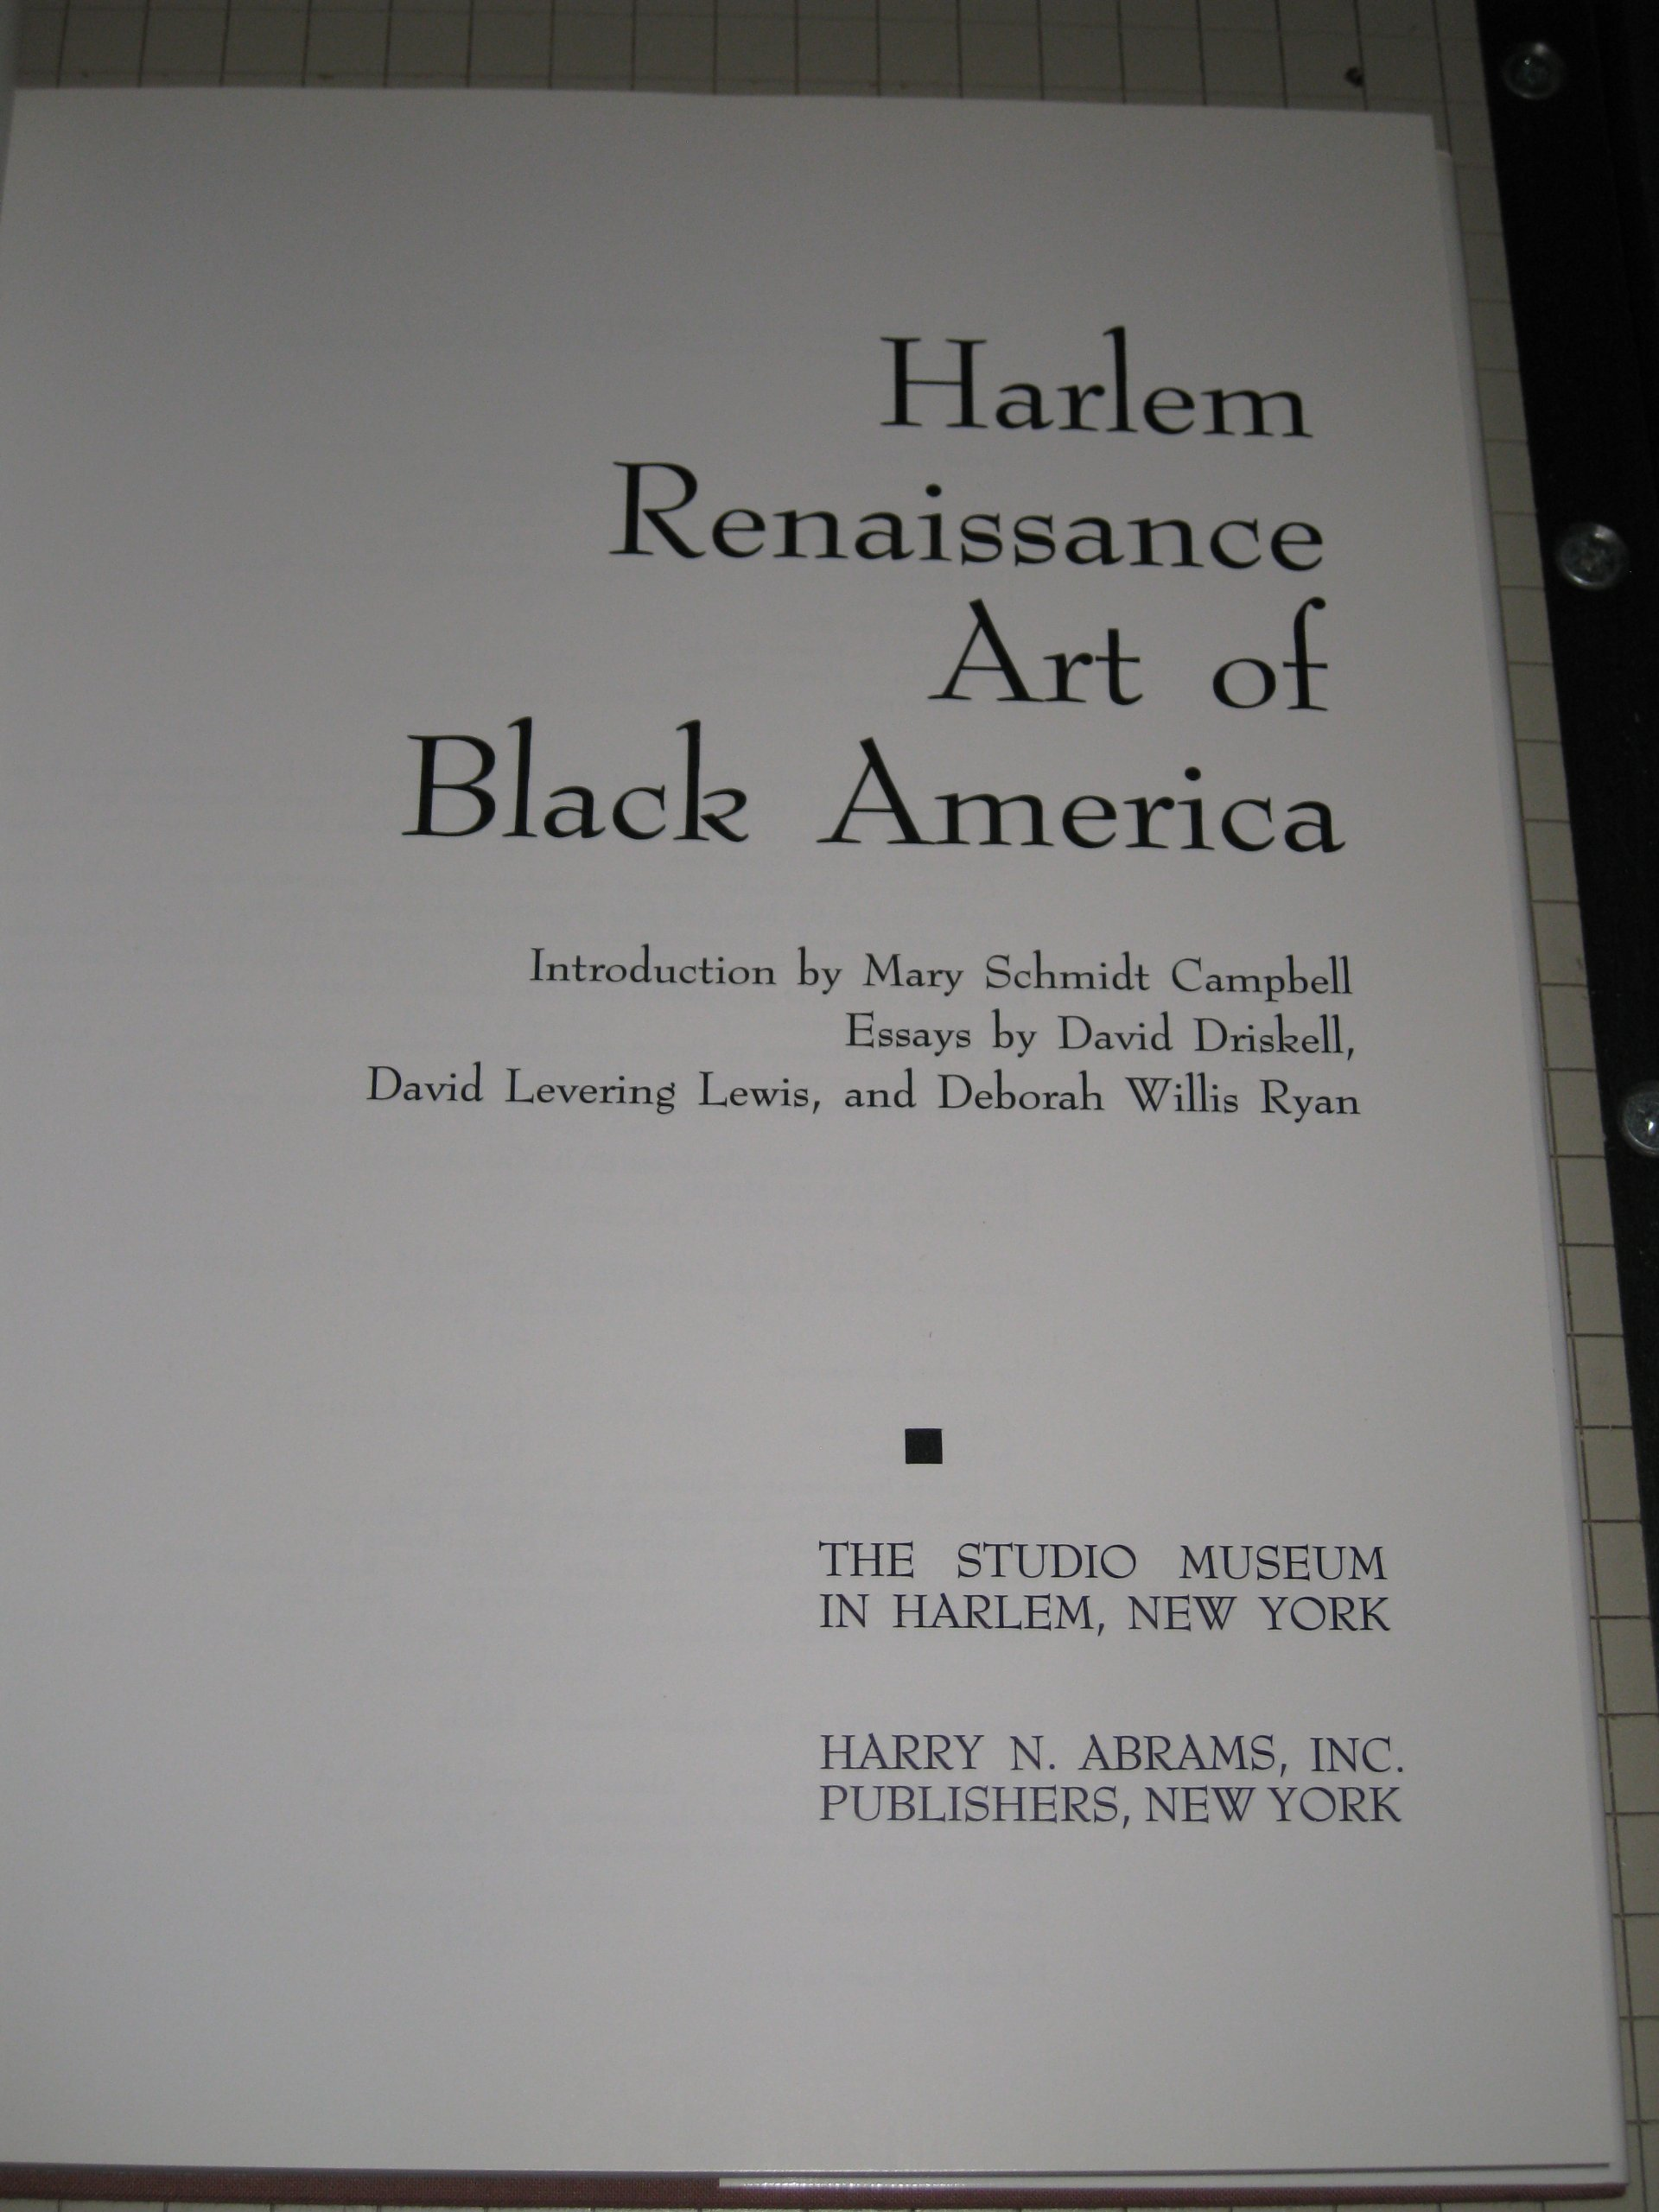 harlem renaissance art of black america david c driskell david harlem renaissance art of black america david c driskell david levering lewis deborah willis ryan mary schmidt campbell david levering david diskell